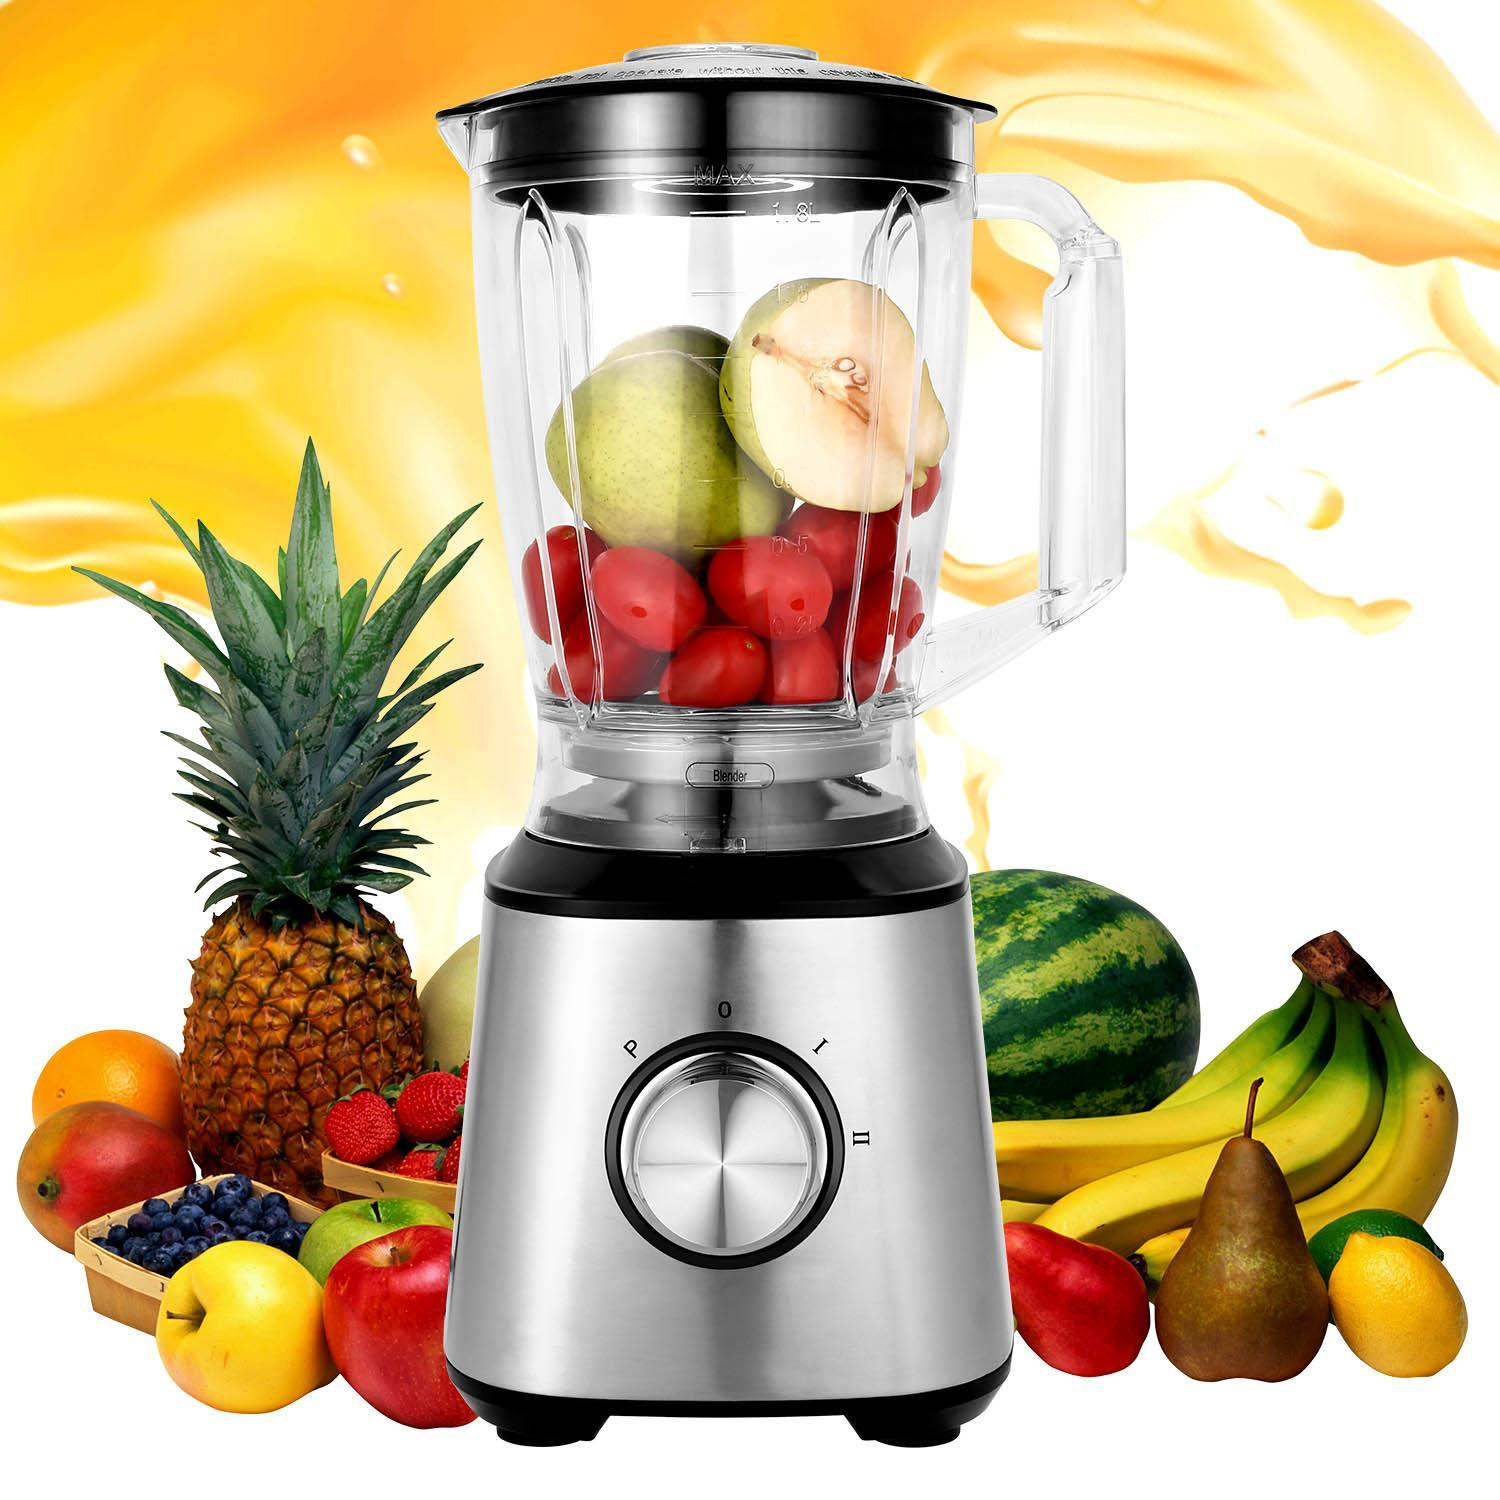 Professional Blender 800W High Speed Electric Total Nutrition Food Processors  for Ice Fruits Vegetables Smoothies Soups Mayonnaise, etc - (Commercial / Kitchen)